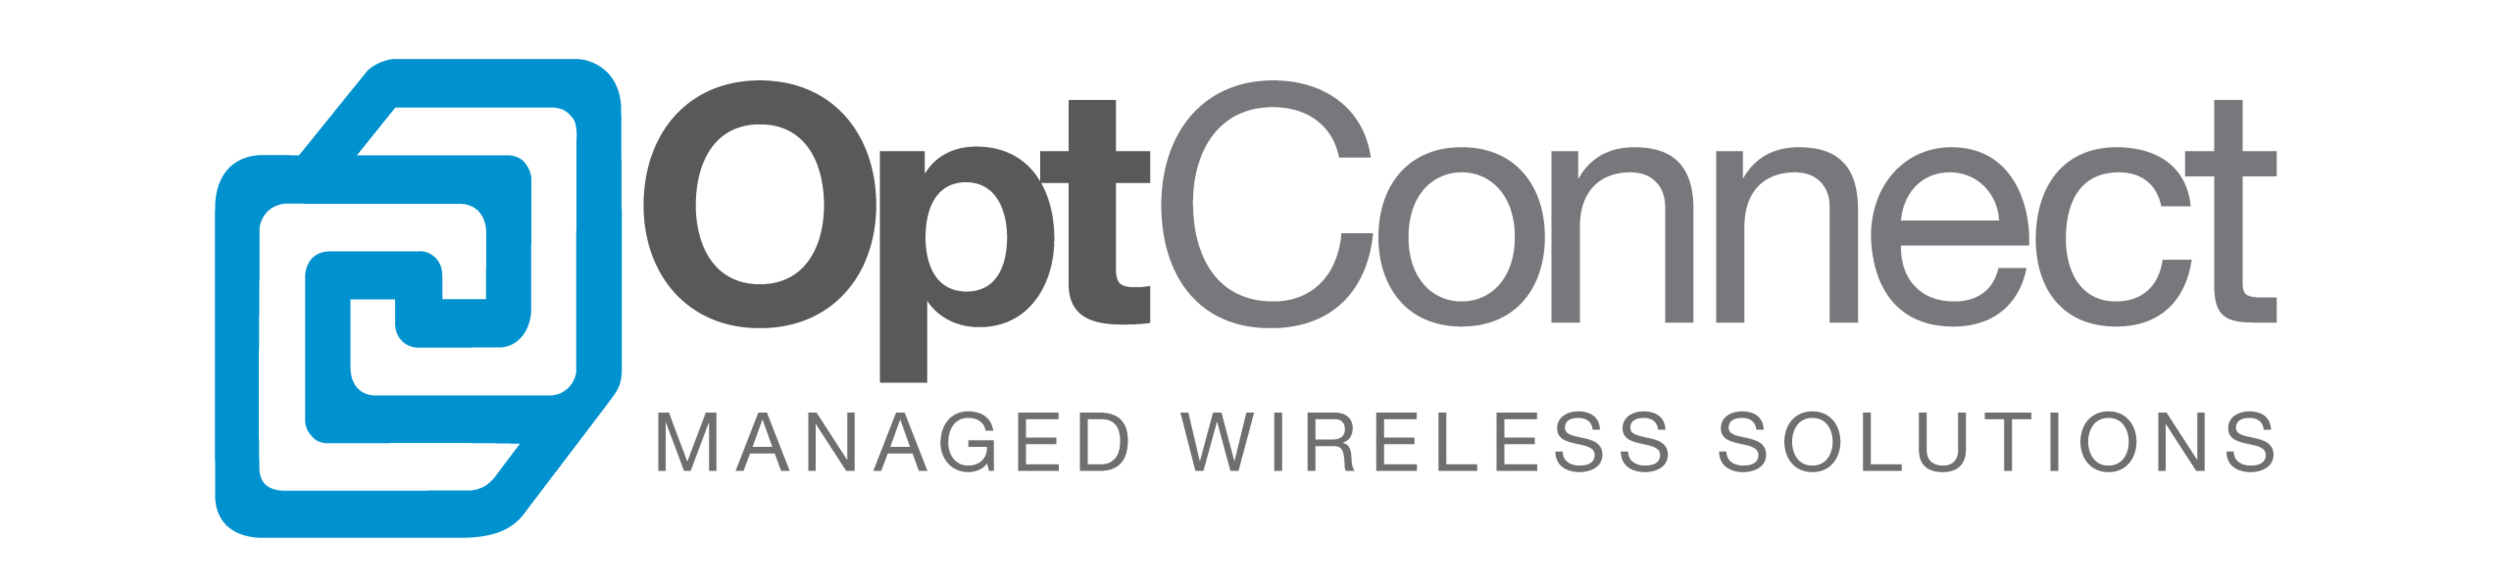 OptConnect-logo.png